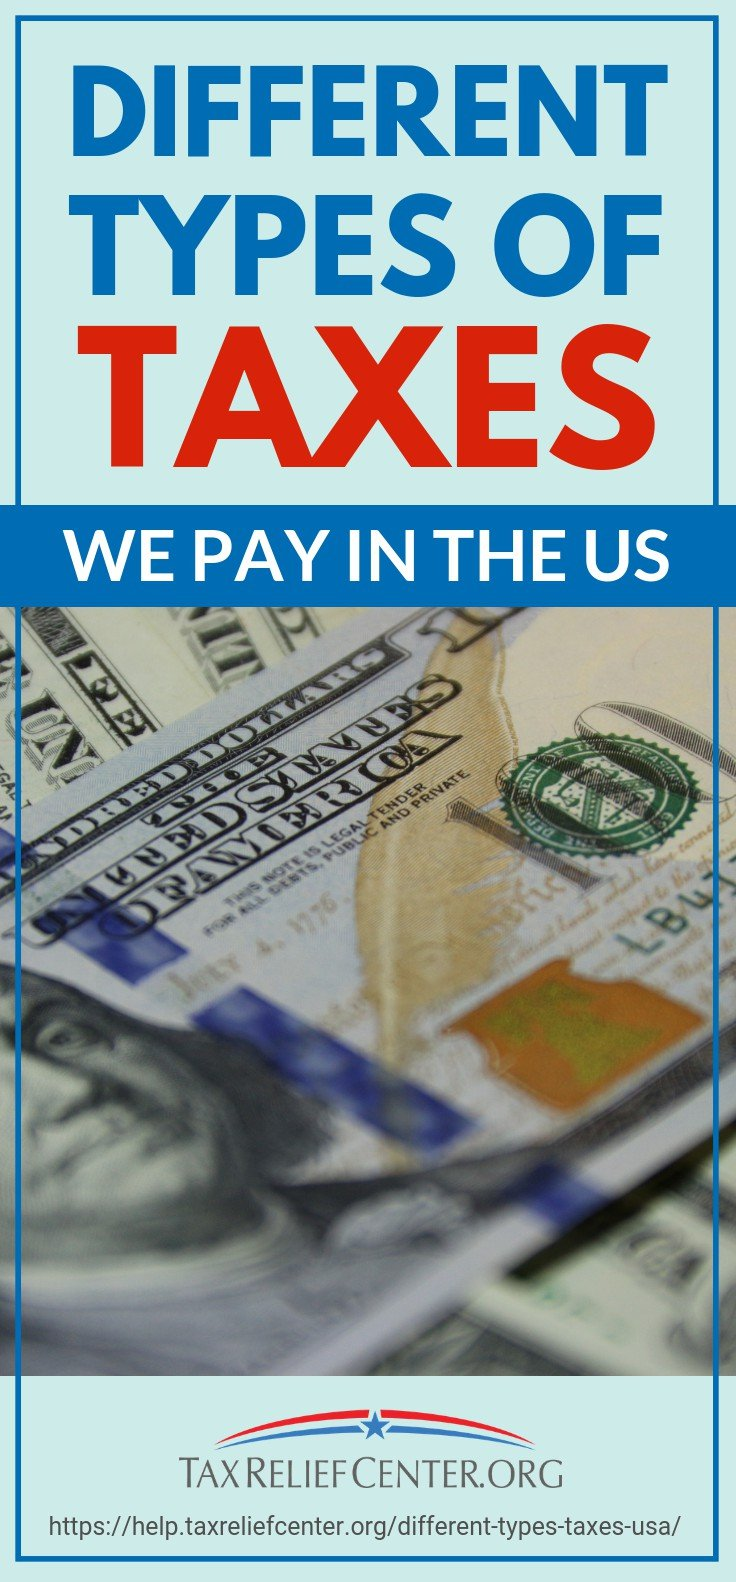 Different Types Of Taxes We Pay In The US [Infographic, 2019 Updated] | https://help.taxreliefcenter.org/different-types-taxes-usa/